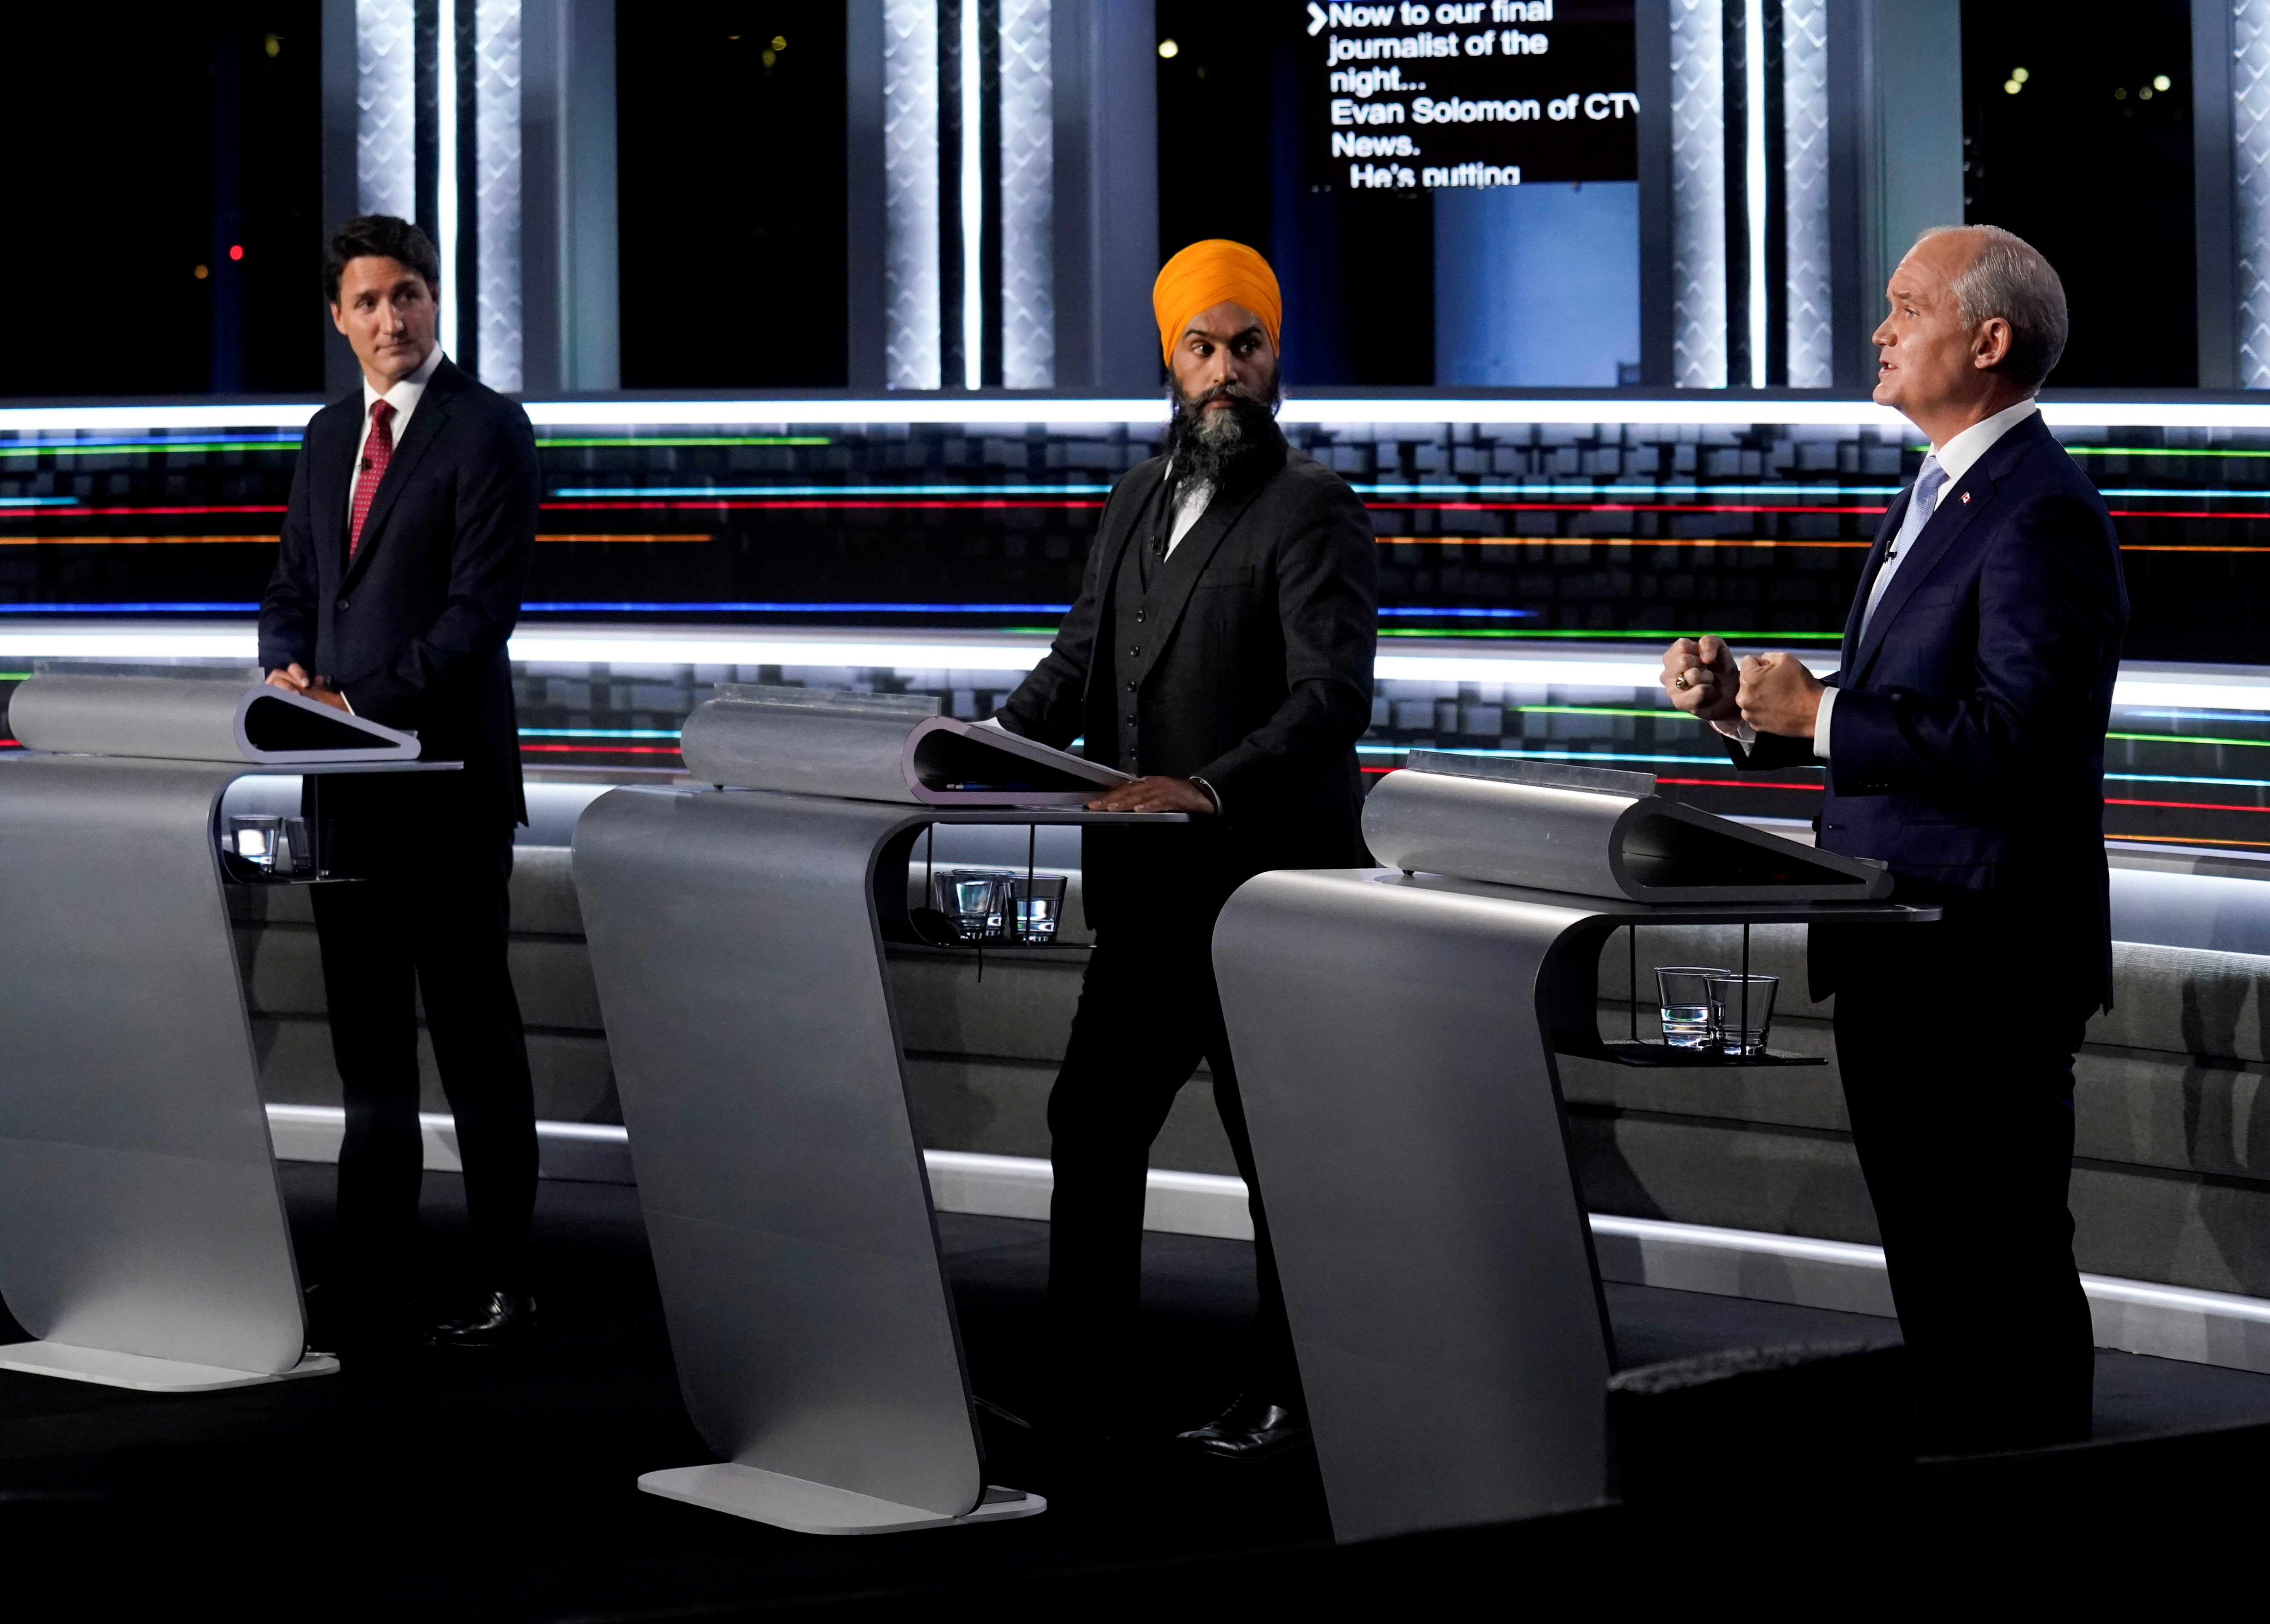 Liberal Leader Justin Trudeau, left to right, NDP Leader Jagmeet Singh, and Conservative Leader Erin O'Toole take part in the federal election English-language Leaders debate in Gatineau, Canada, September 9, 2021.  Adrian Wyld/Pool via REUTERS/File Photo